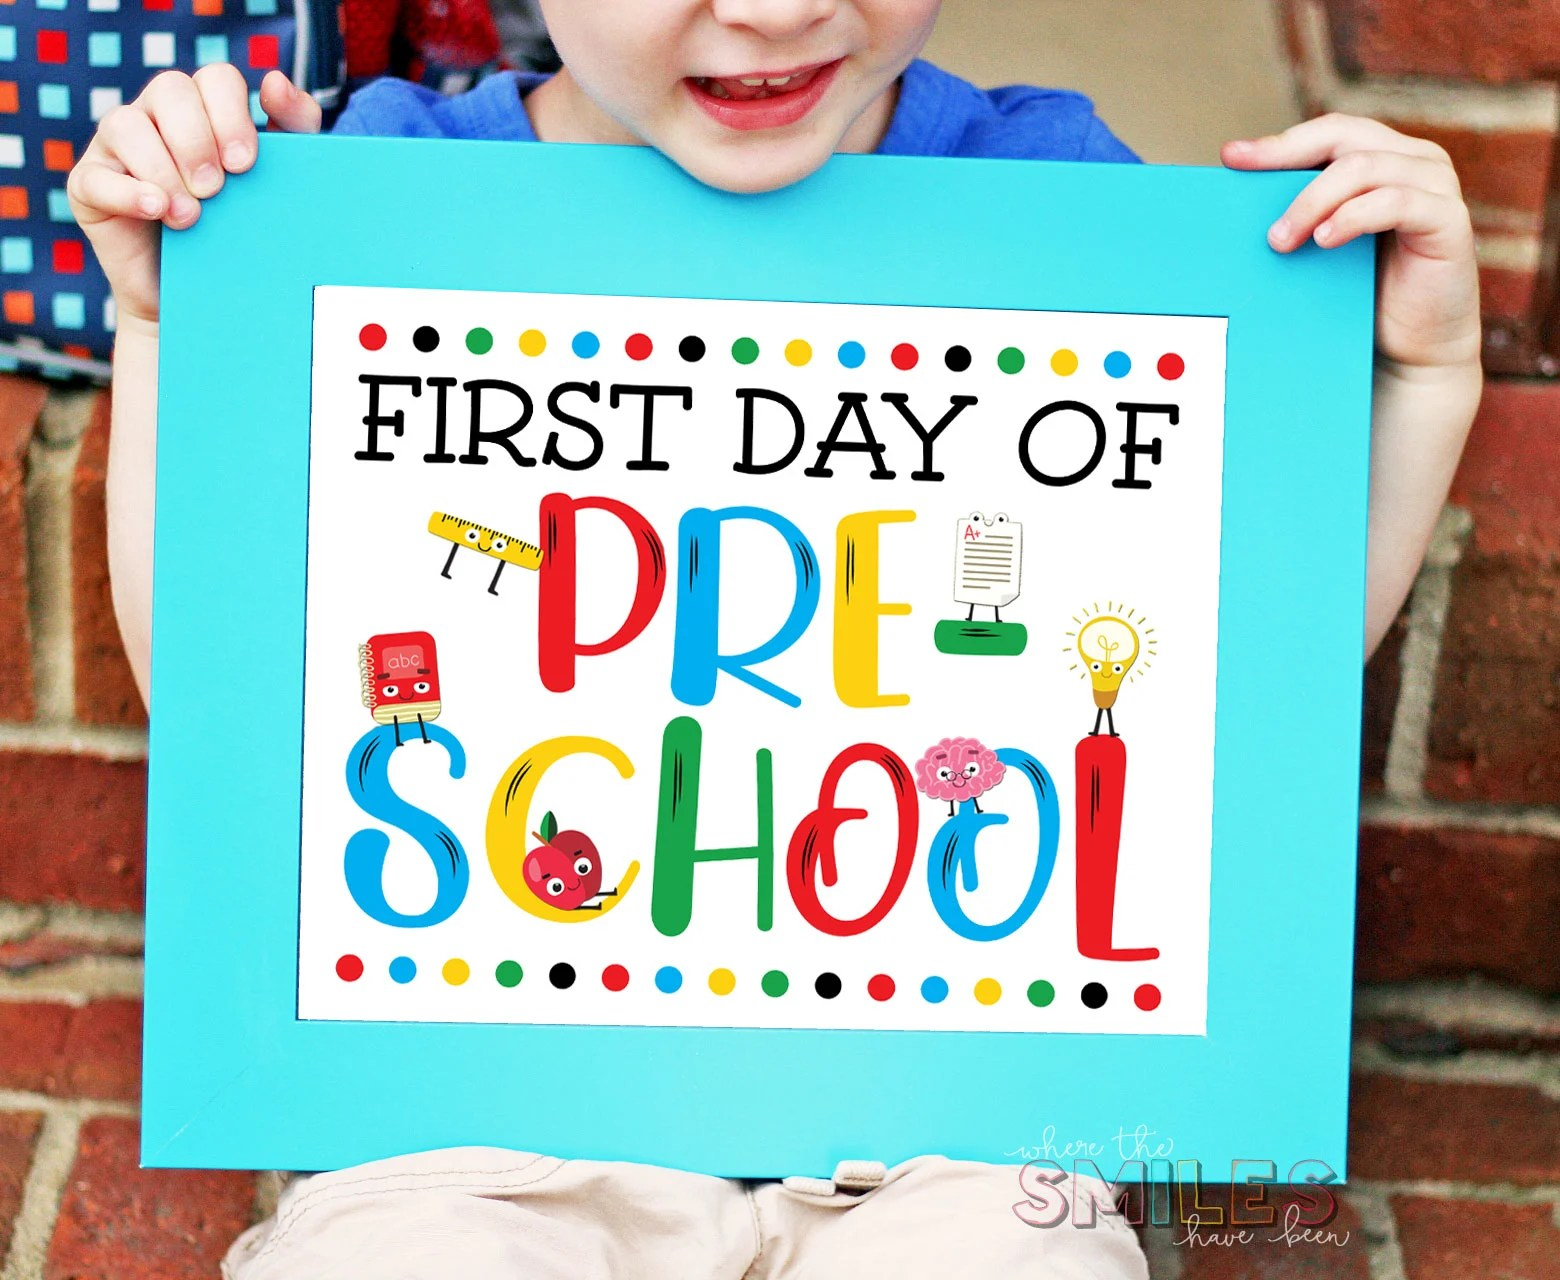 photograph about 1st Day of School Sign Printable named Free of charge Initial Working day of College or university Indication Printables - A few Shade Products!